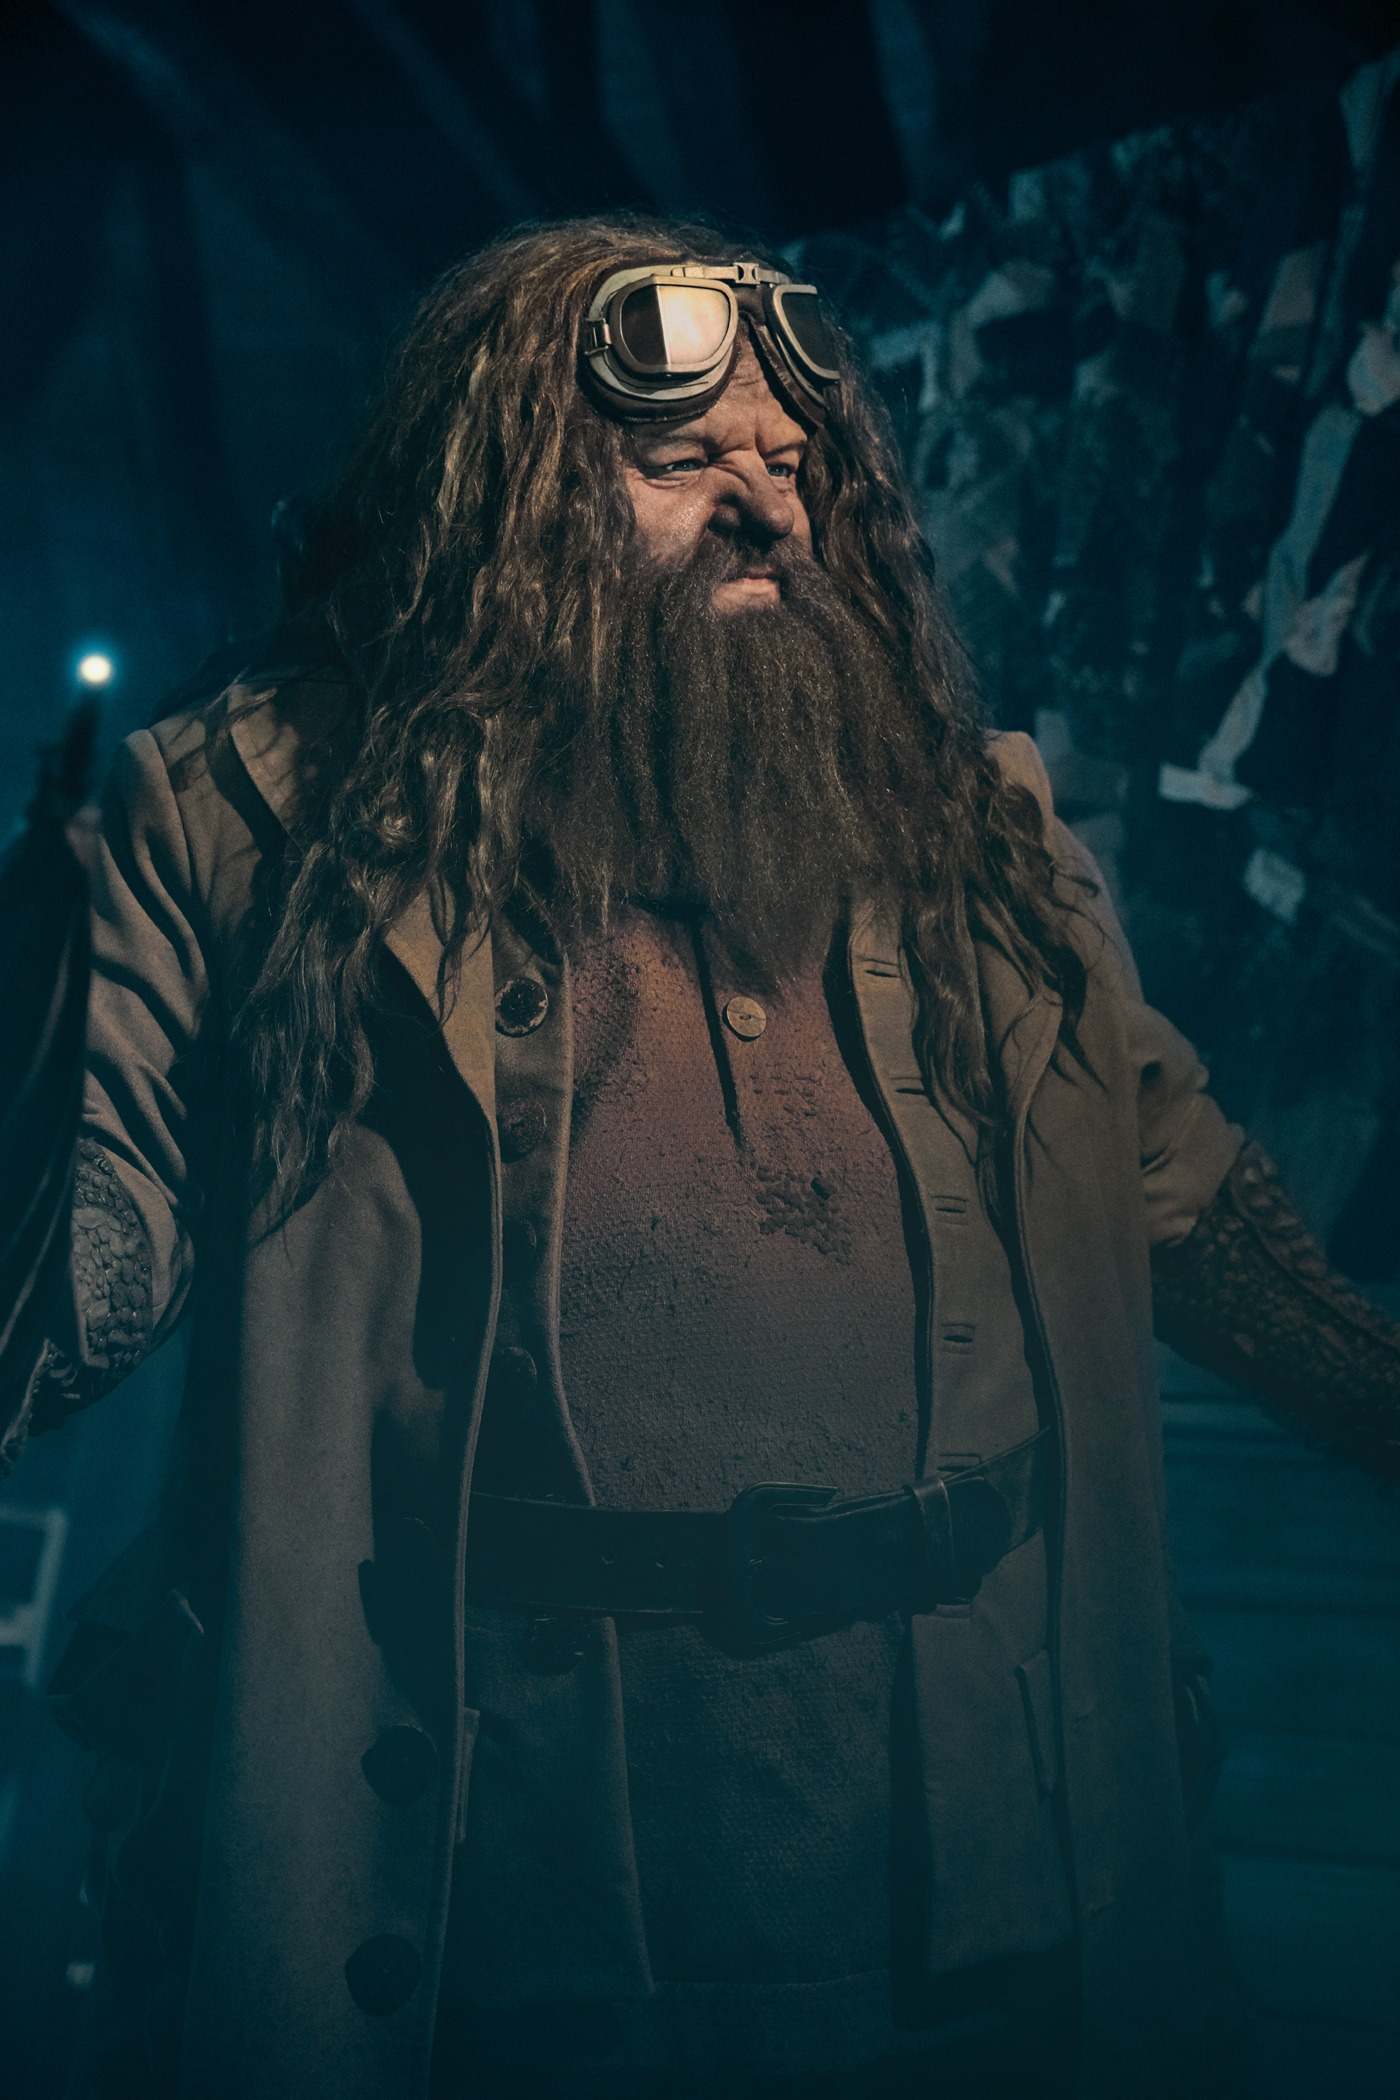 02_Hagrid's Animated Figure Reveal